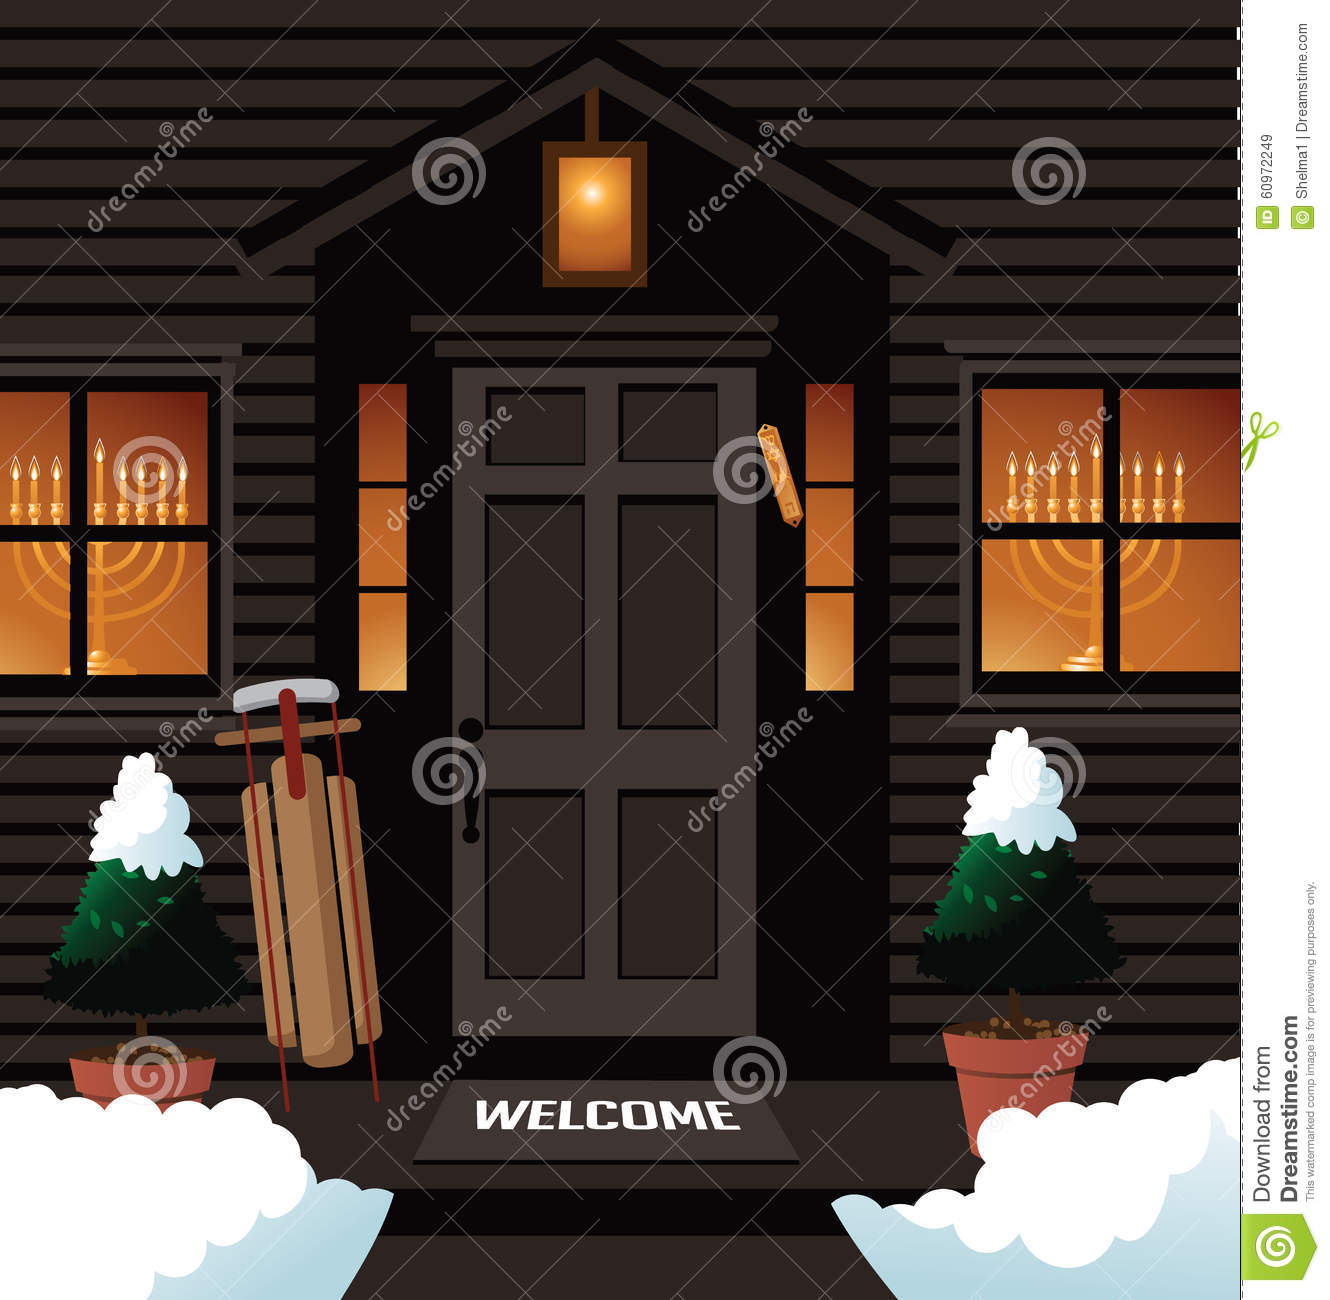 Hanukkah Front Door With Menorah Mezuzah Stock Vector Illustration